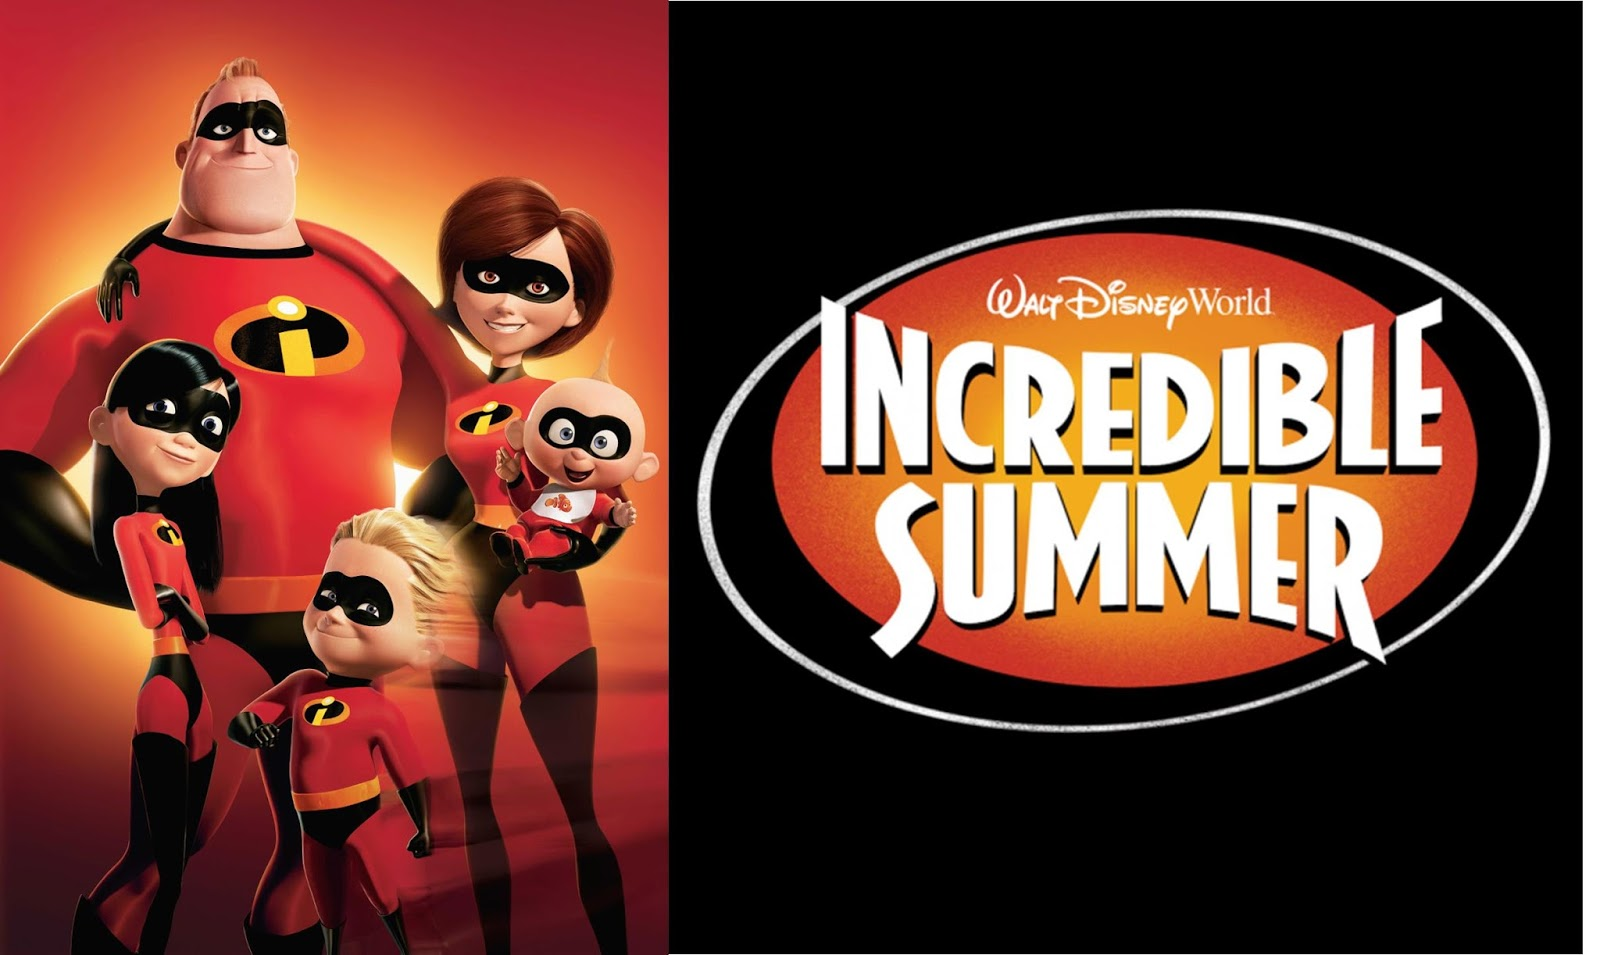 Incredible Summer Event Coming To Walt Disney World This